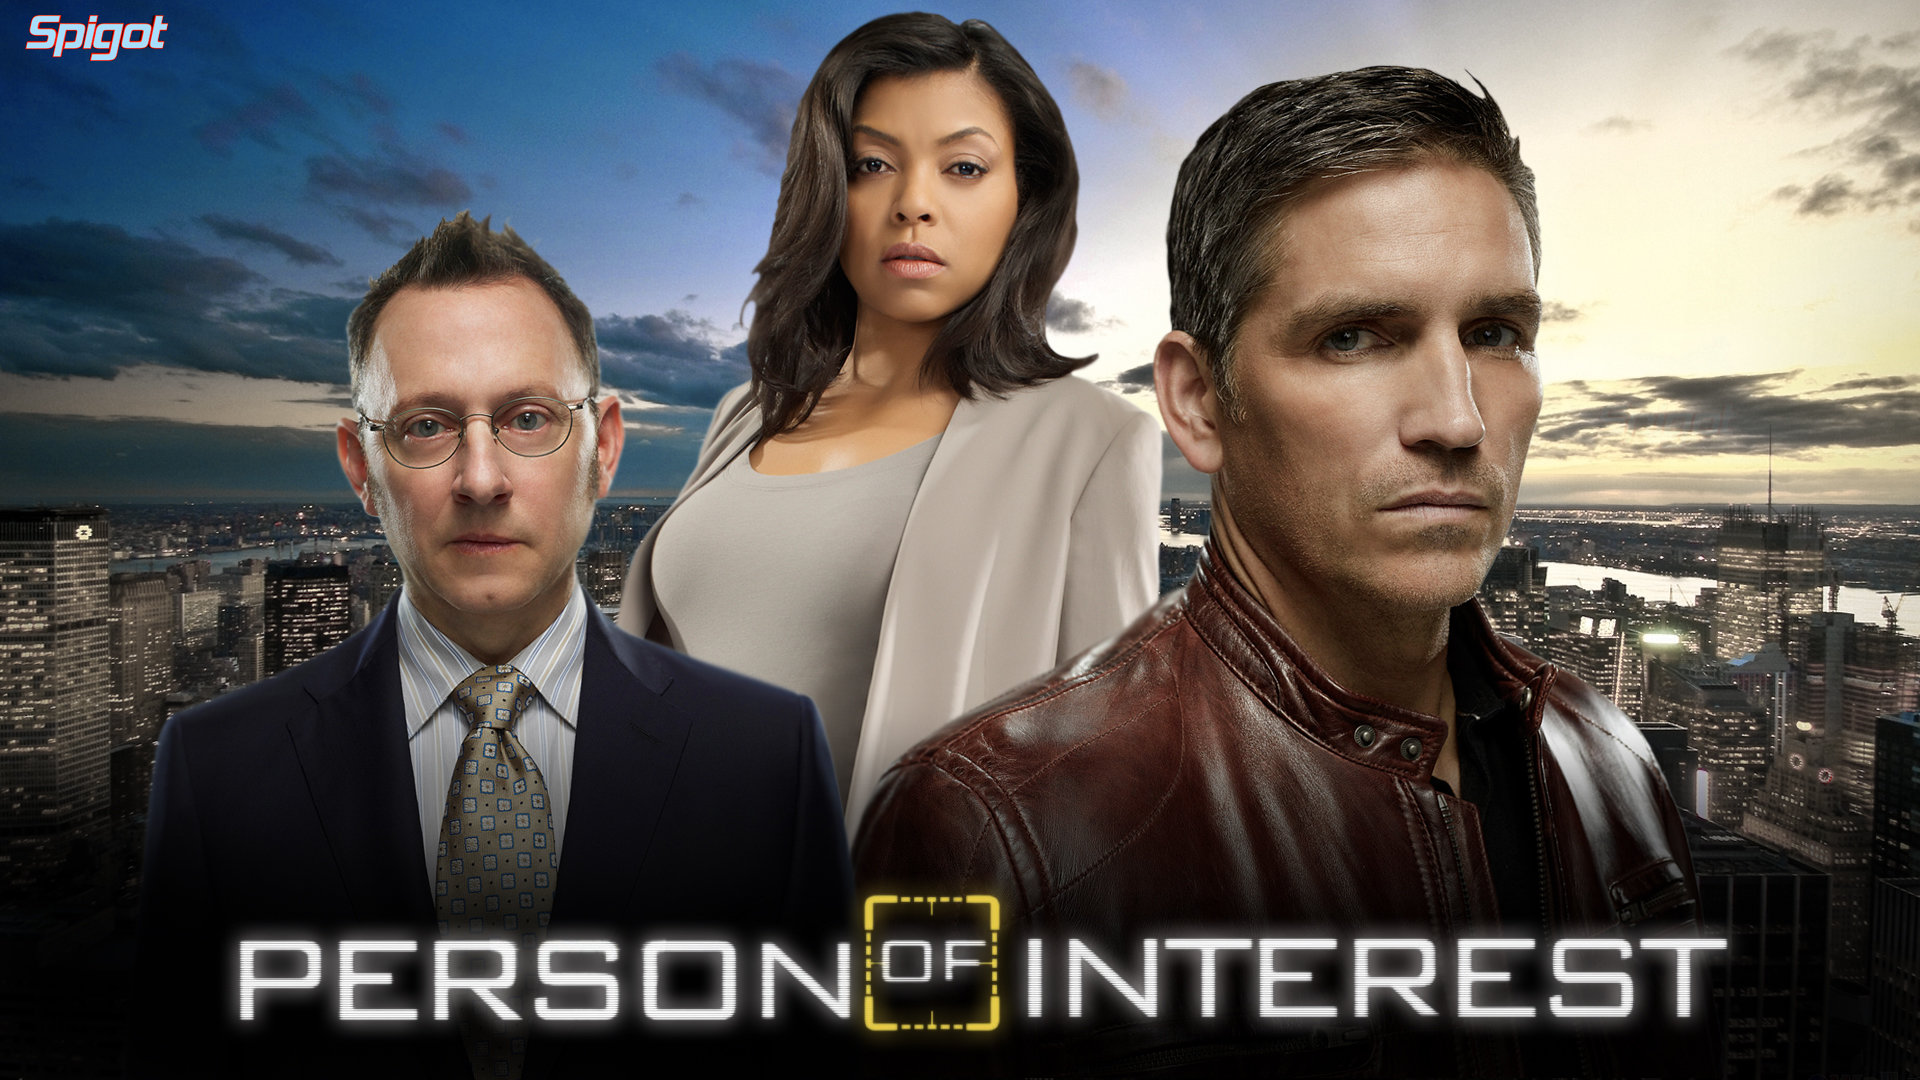 Download 1080p Person Of Interest (POI) computer wallpaper ID:458372 for free